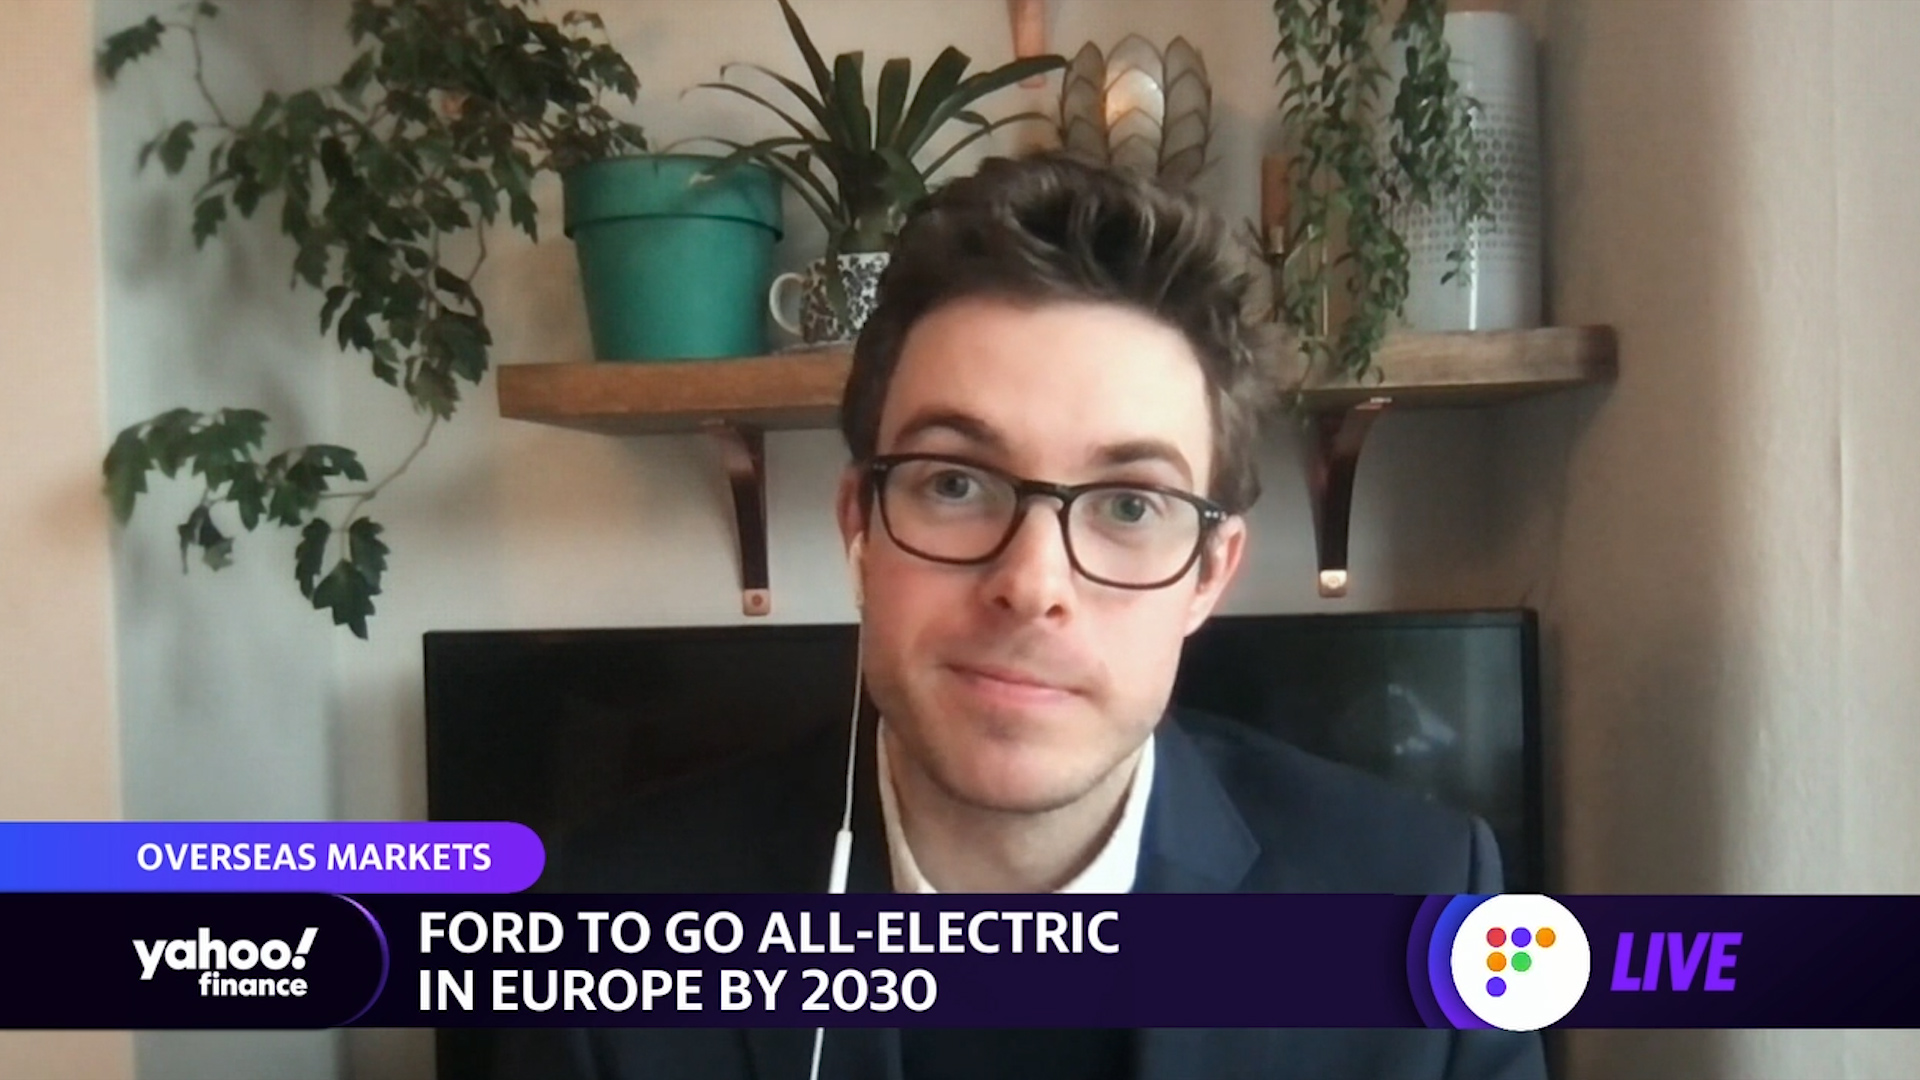 Ford to go all-electric in Europe by 2020